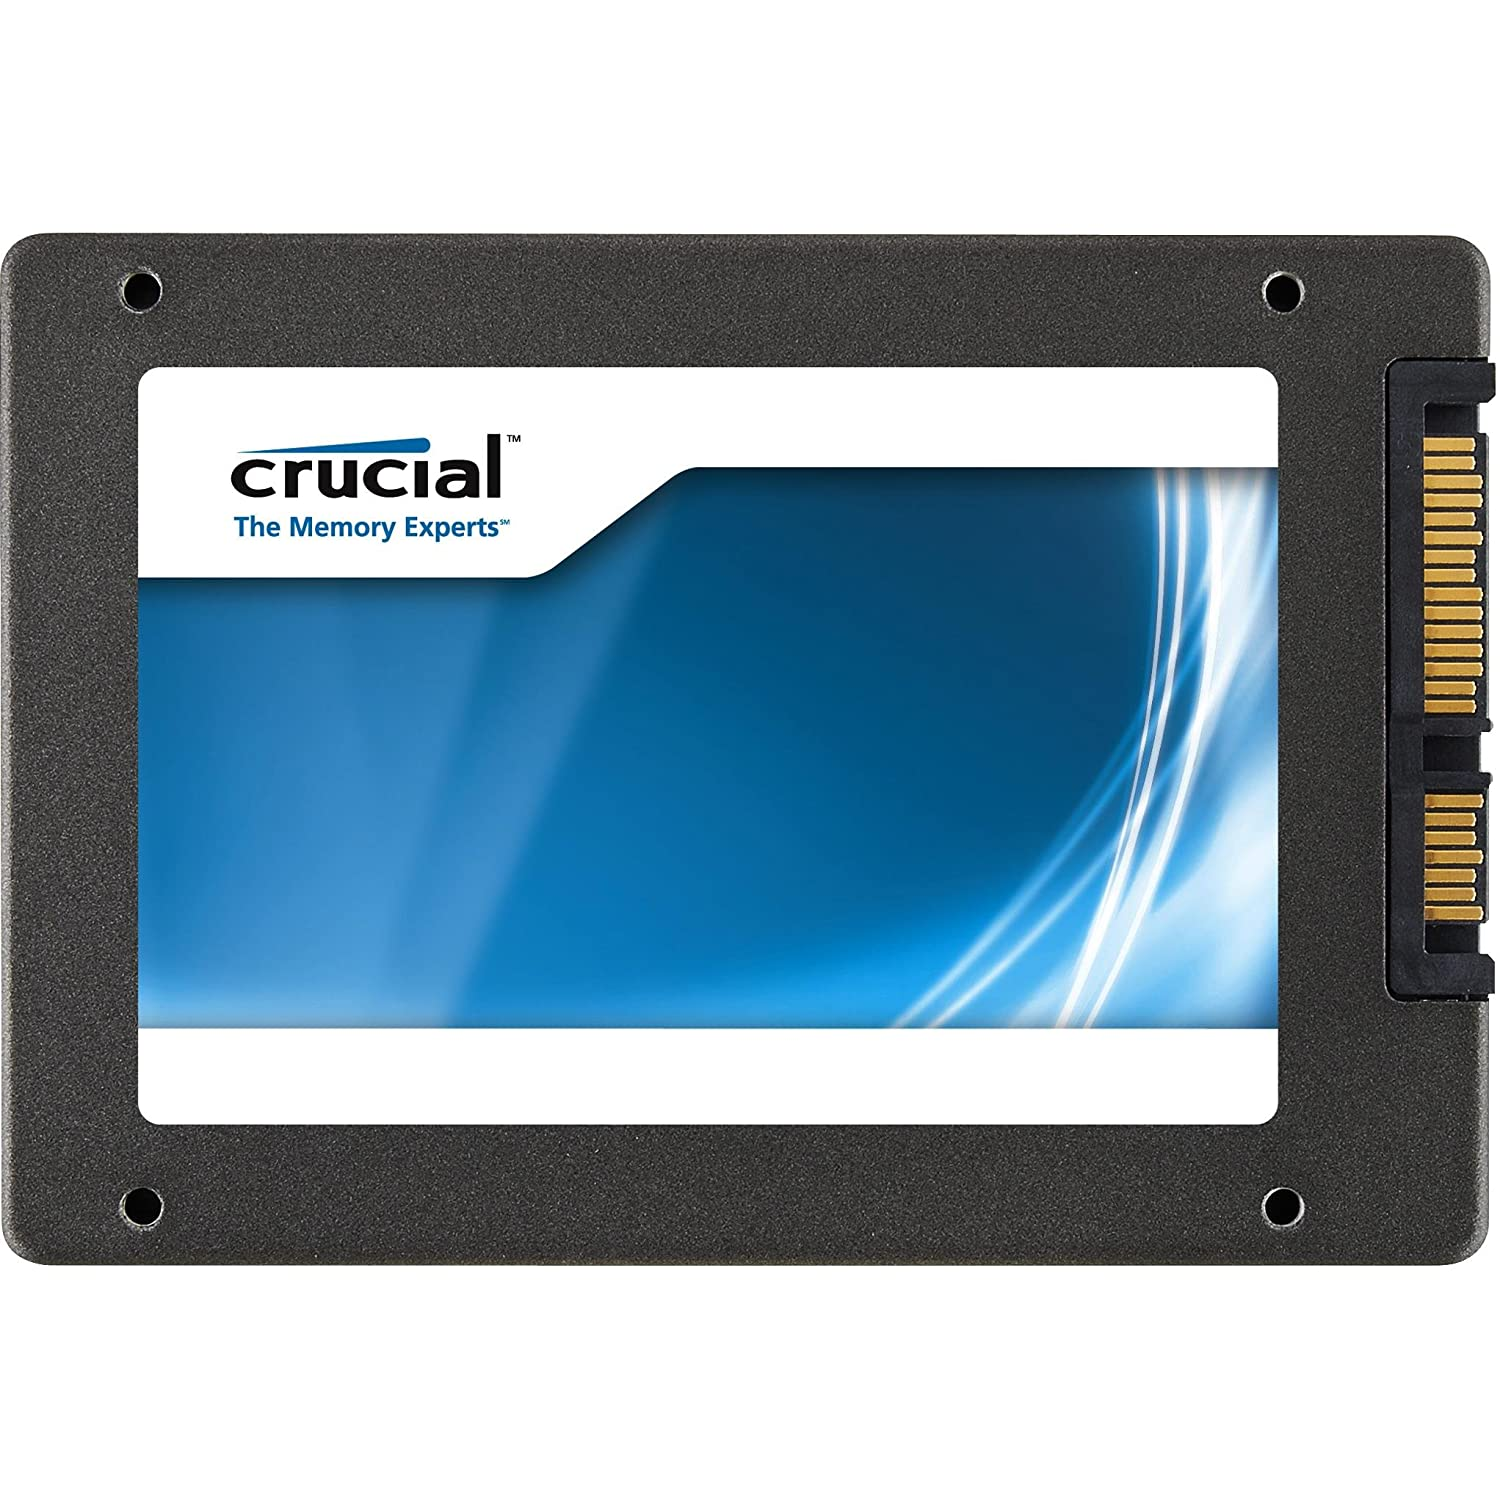 Crucial CT512M4SSD2 - Disco Duro Interno de 512 GB, SATA, 2.5 ...